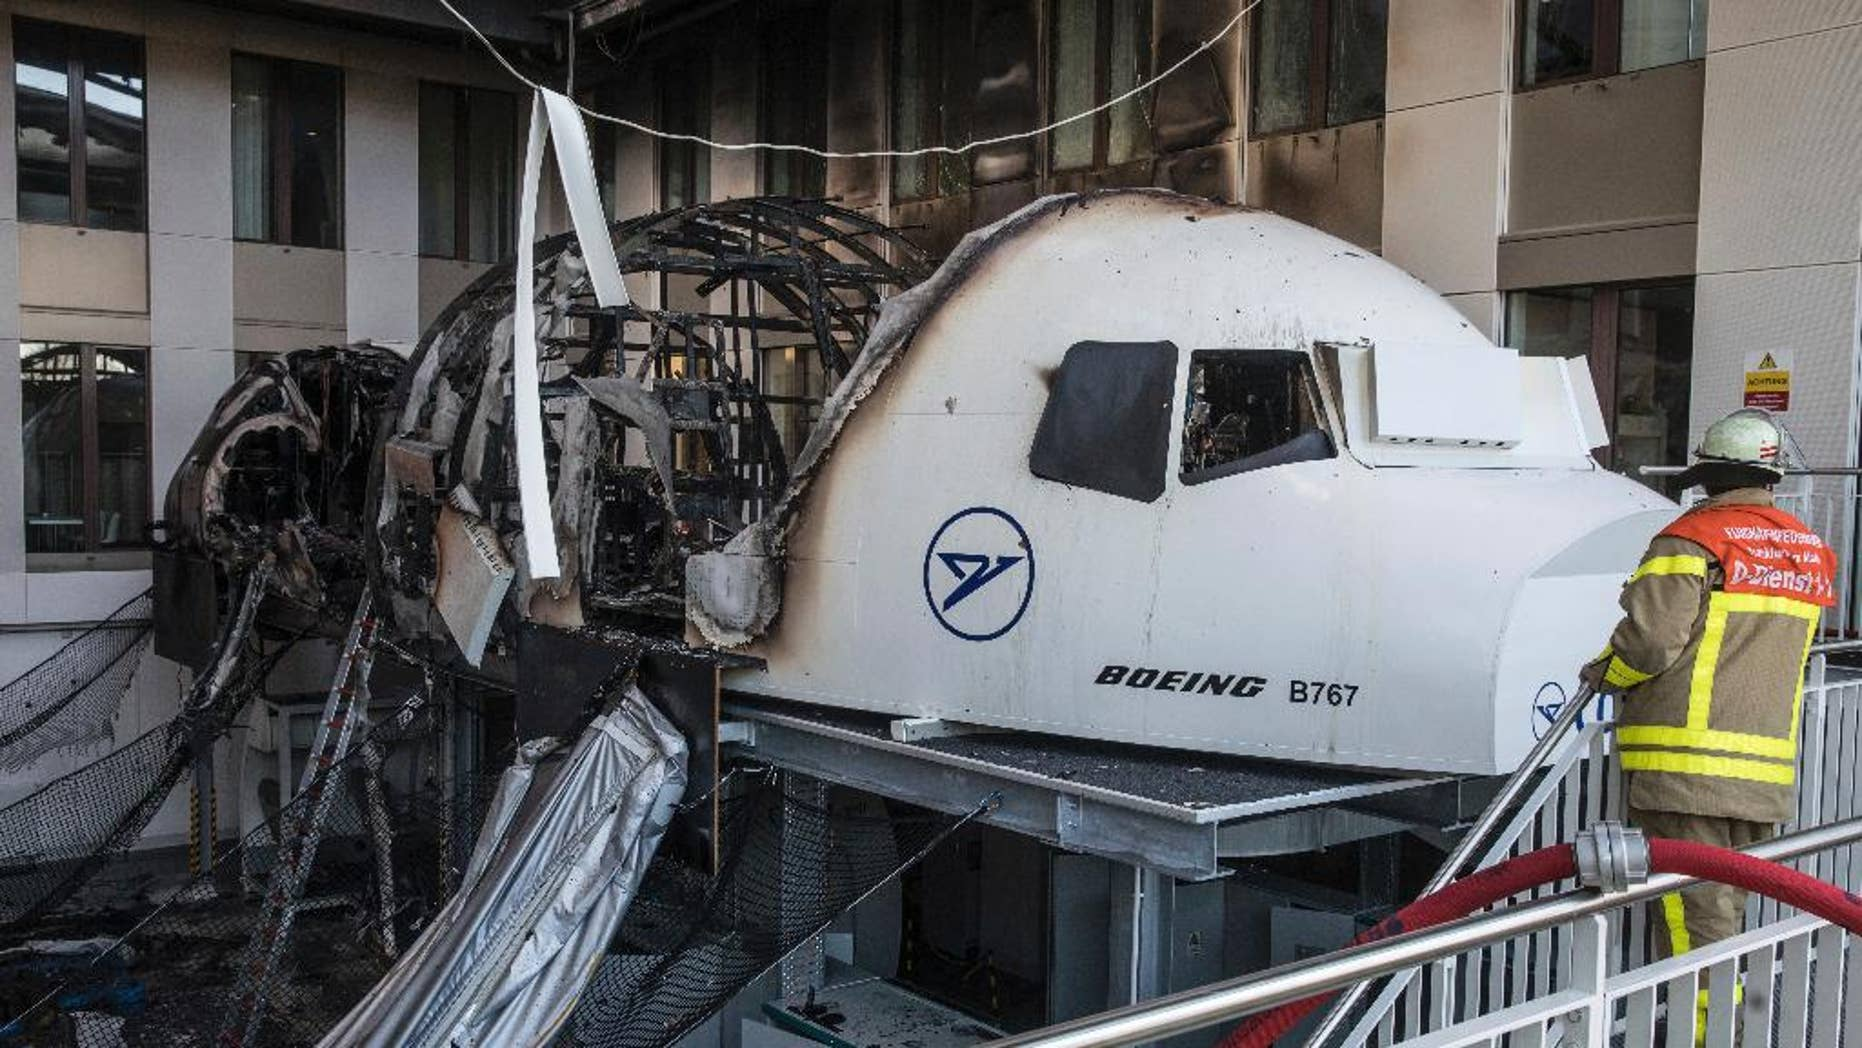 A firefighter stands in the office of Condor airlines next to a burned out flight simulator in the airport in Frankfurt am Main, Germany,  Thursday Dec. 29,  2016.  The flight simulator has caught fire in an office block at Frankfurt airport, forcing some 200 people to leave the building. The fire service says one person was taken to a hospital suffering from the effects of smoke inhalation.  (Frank Rumpenhorst/dpa via AP)